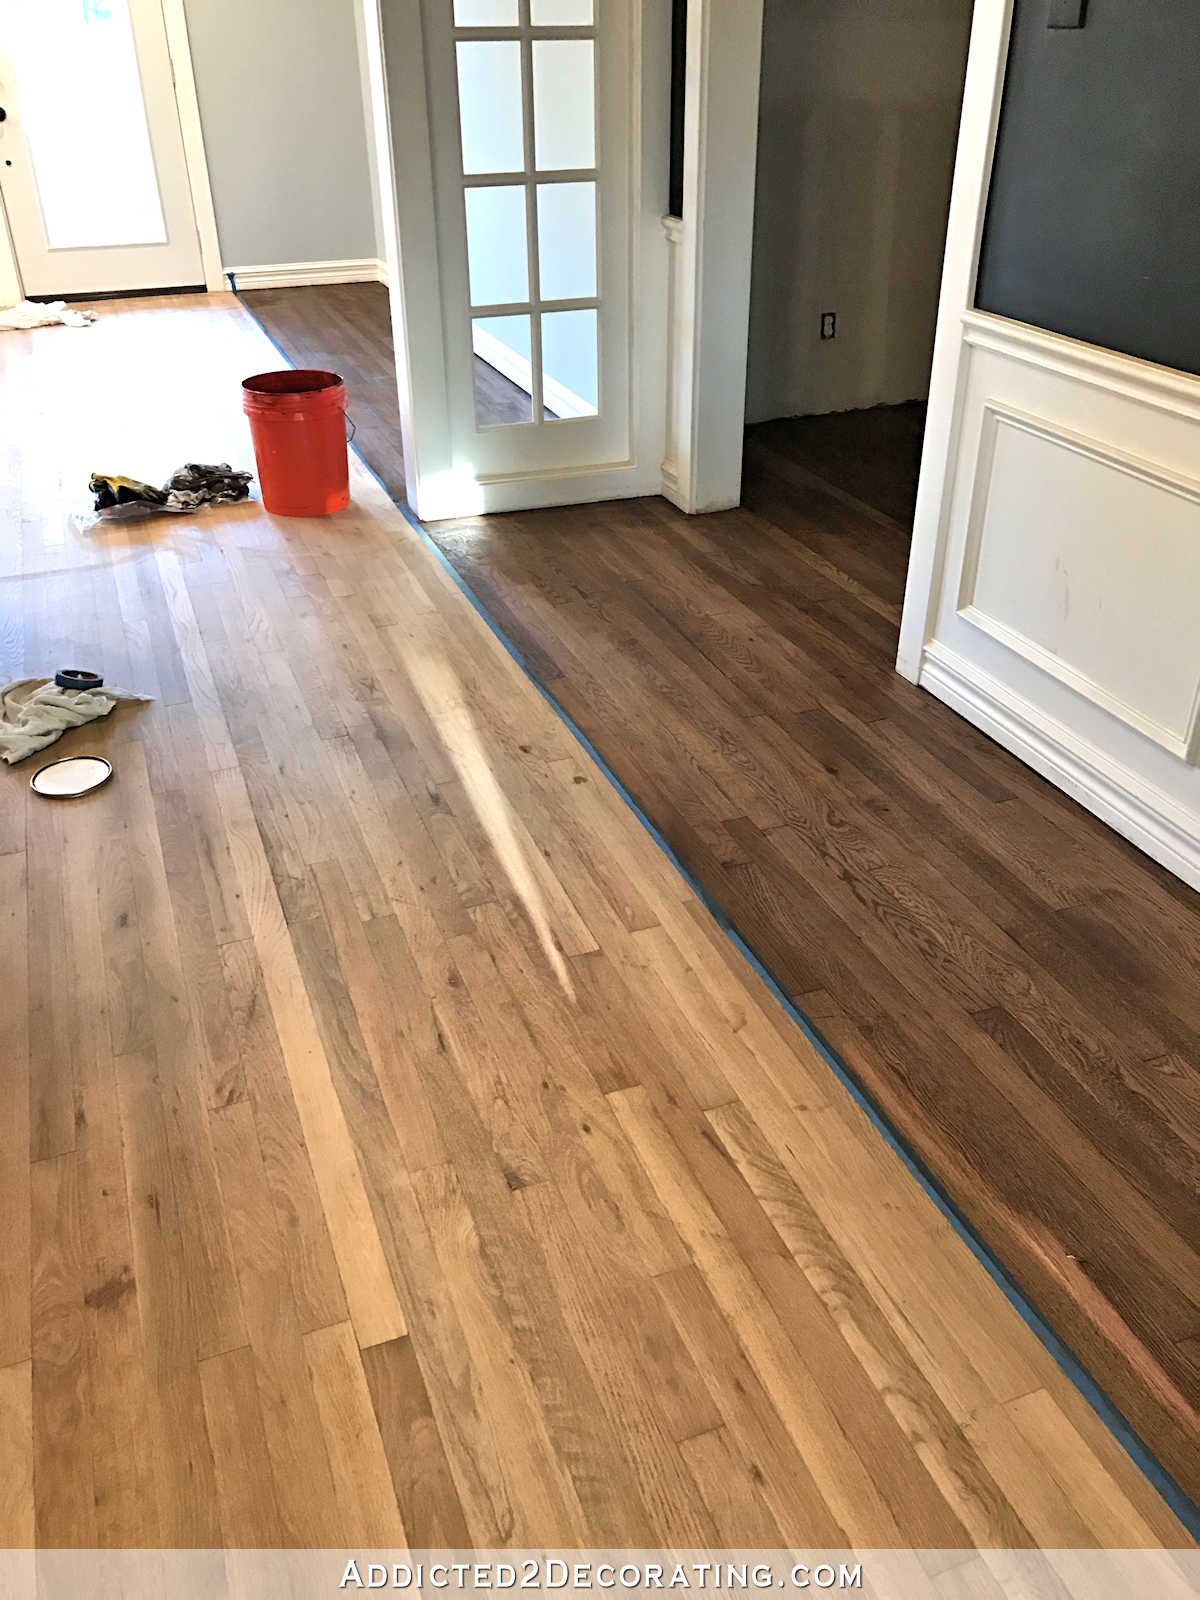 hardwood floor finish satin or semi gloss of adventures in staining my red oak hardwood floors products process throughout staining red oak hardwood floors 6 stain on partial floor in entryway and music